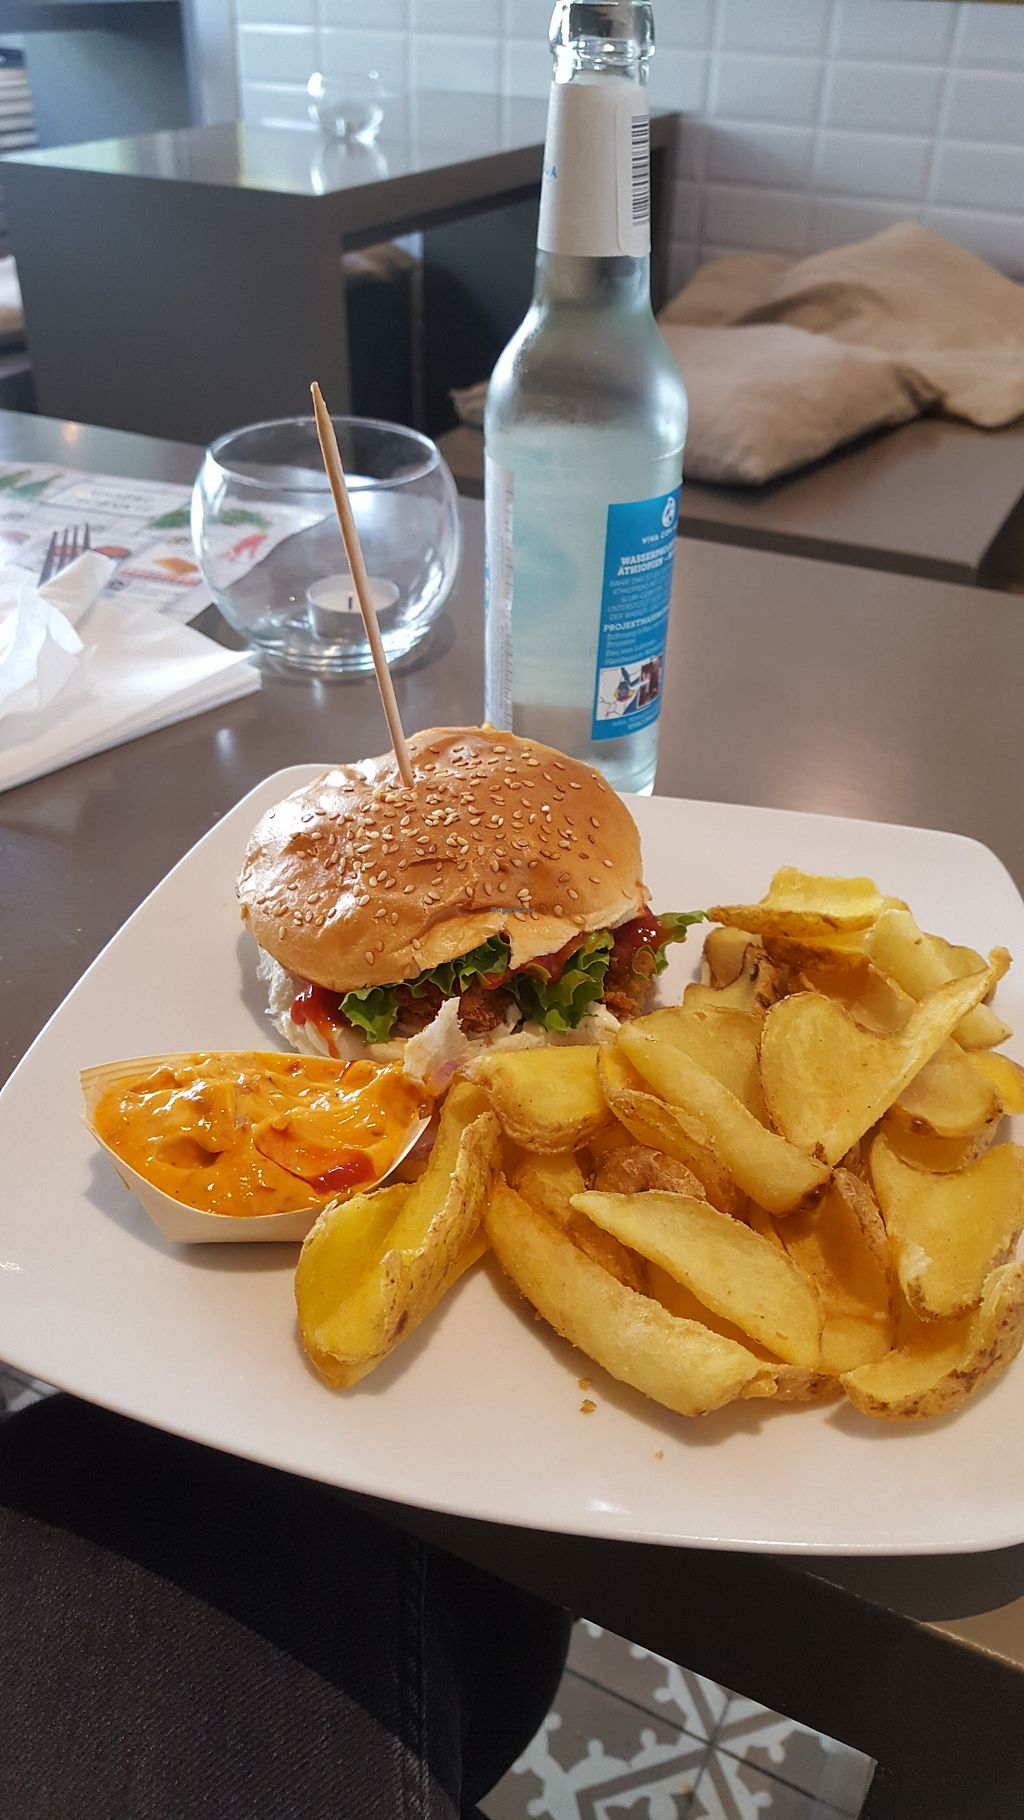 """Photo of Der Vegetarische Metzger  by <a href=""""/members/profile/sevolo"""">sevolo</a> <br/>Vegan crsipy chicken burger <br/> April 23, 2018  - <a href='/contact/abuse/image/80572/390016'>Report</a>"""